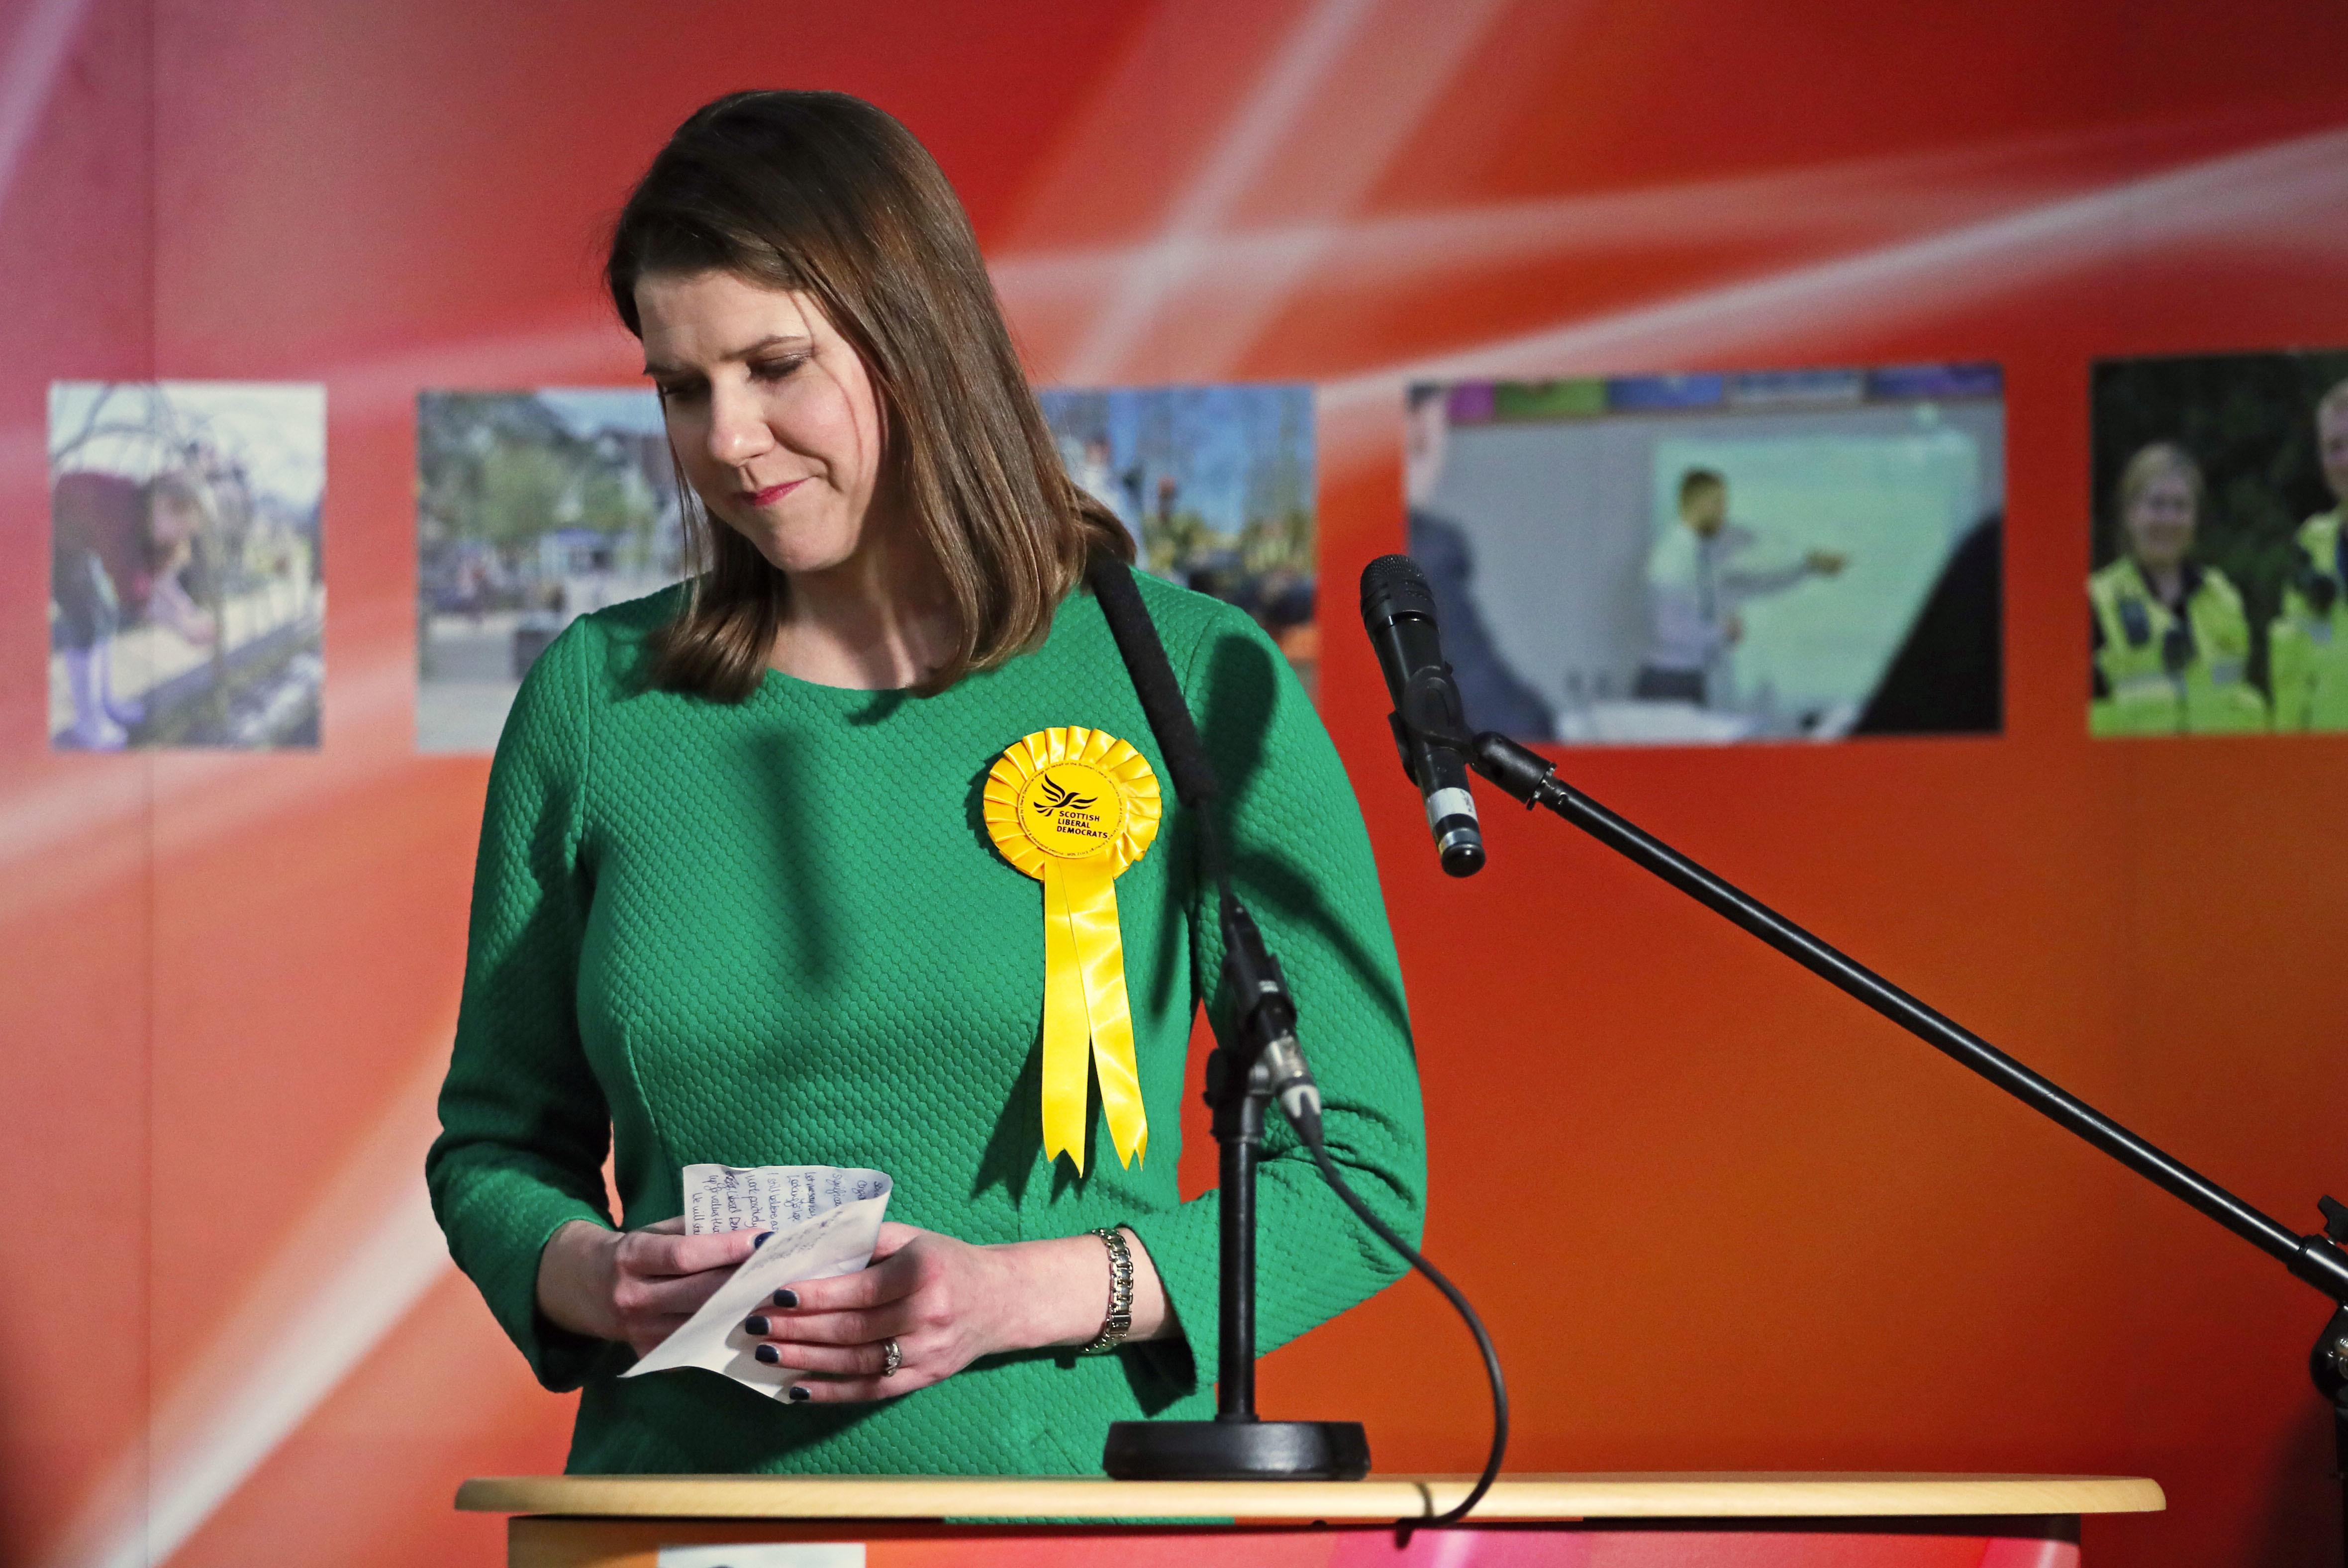 Jo Swinson criticised by former Lib Dem deputy for making 'wrong decisions' after losing seat